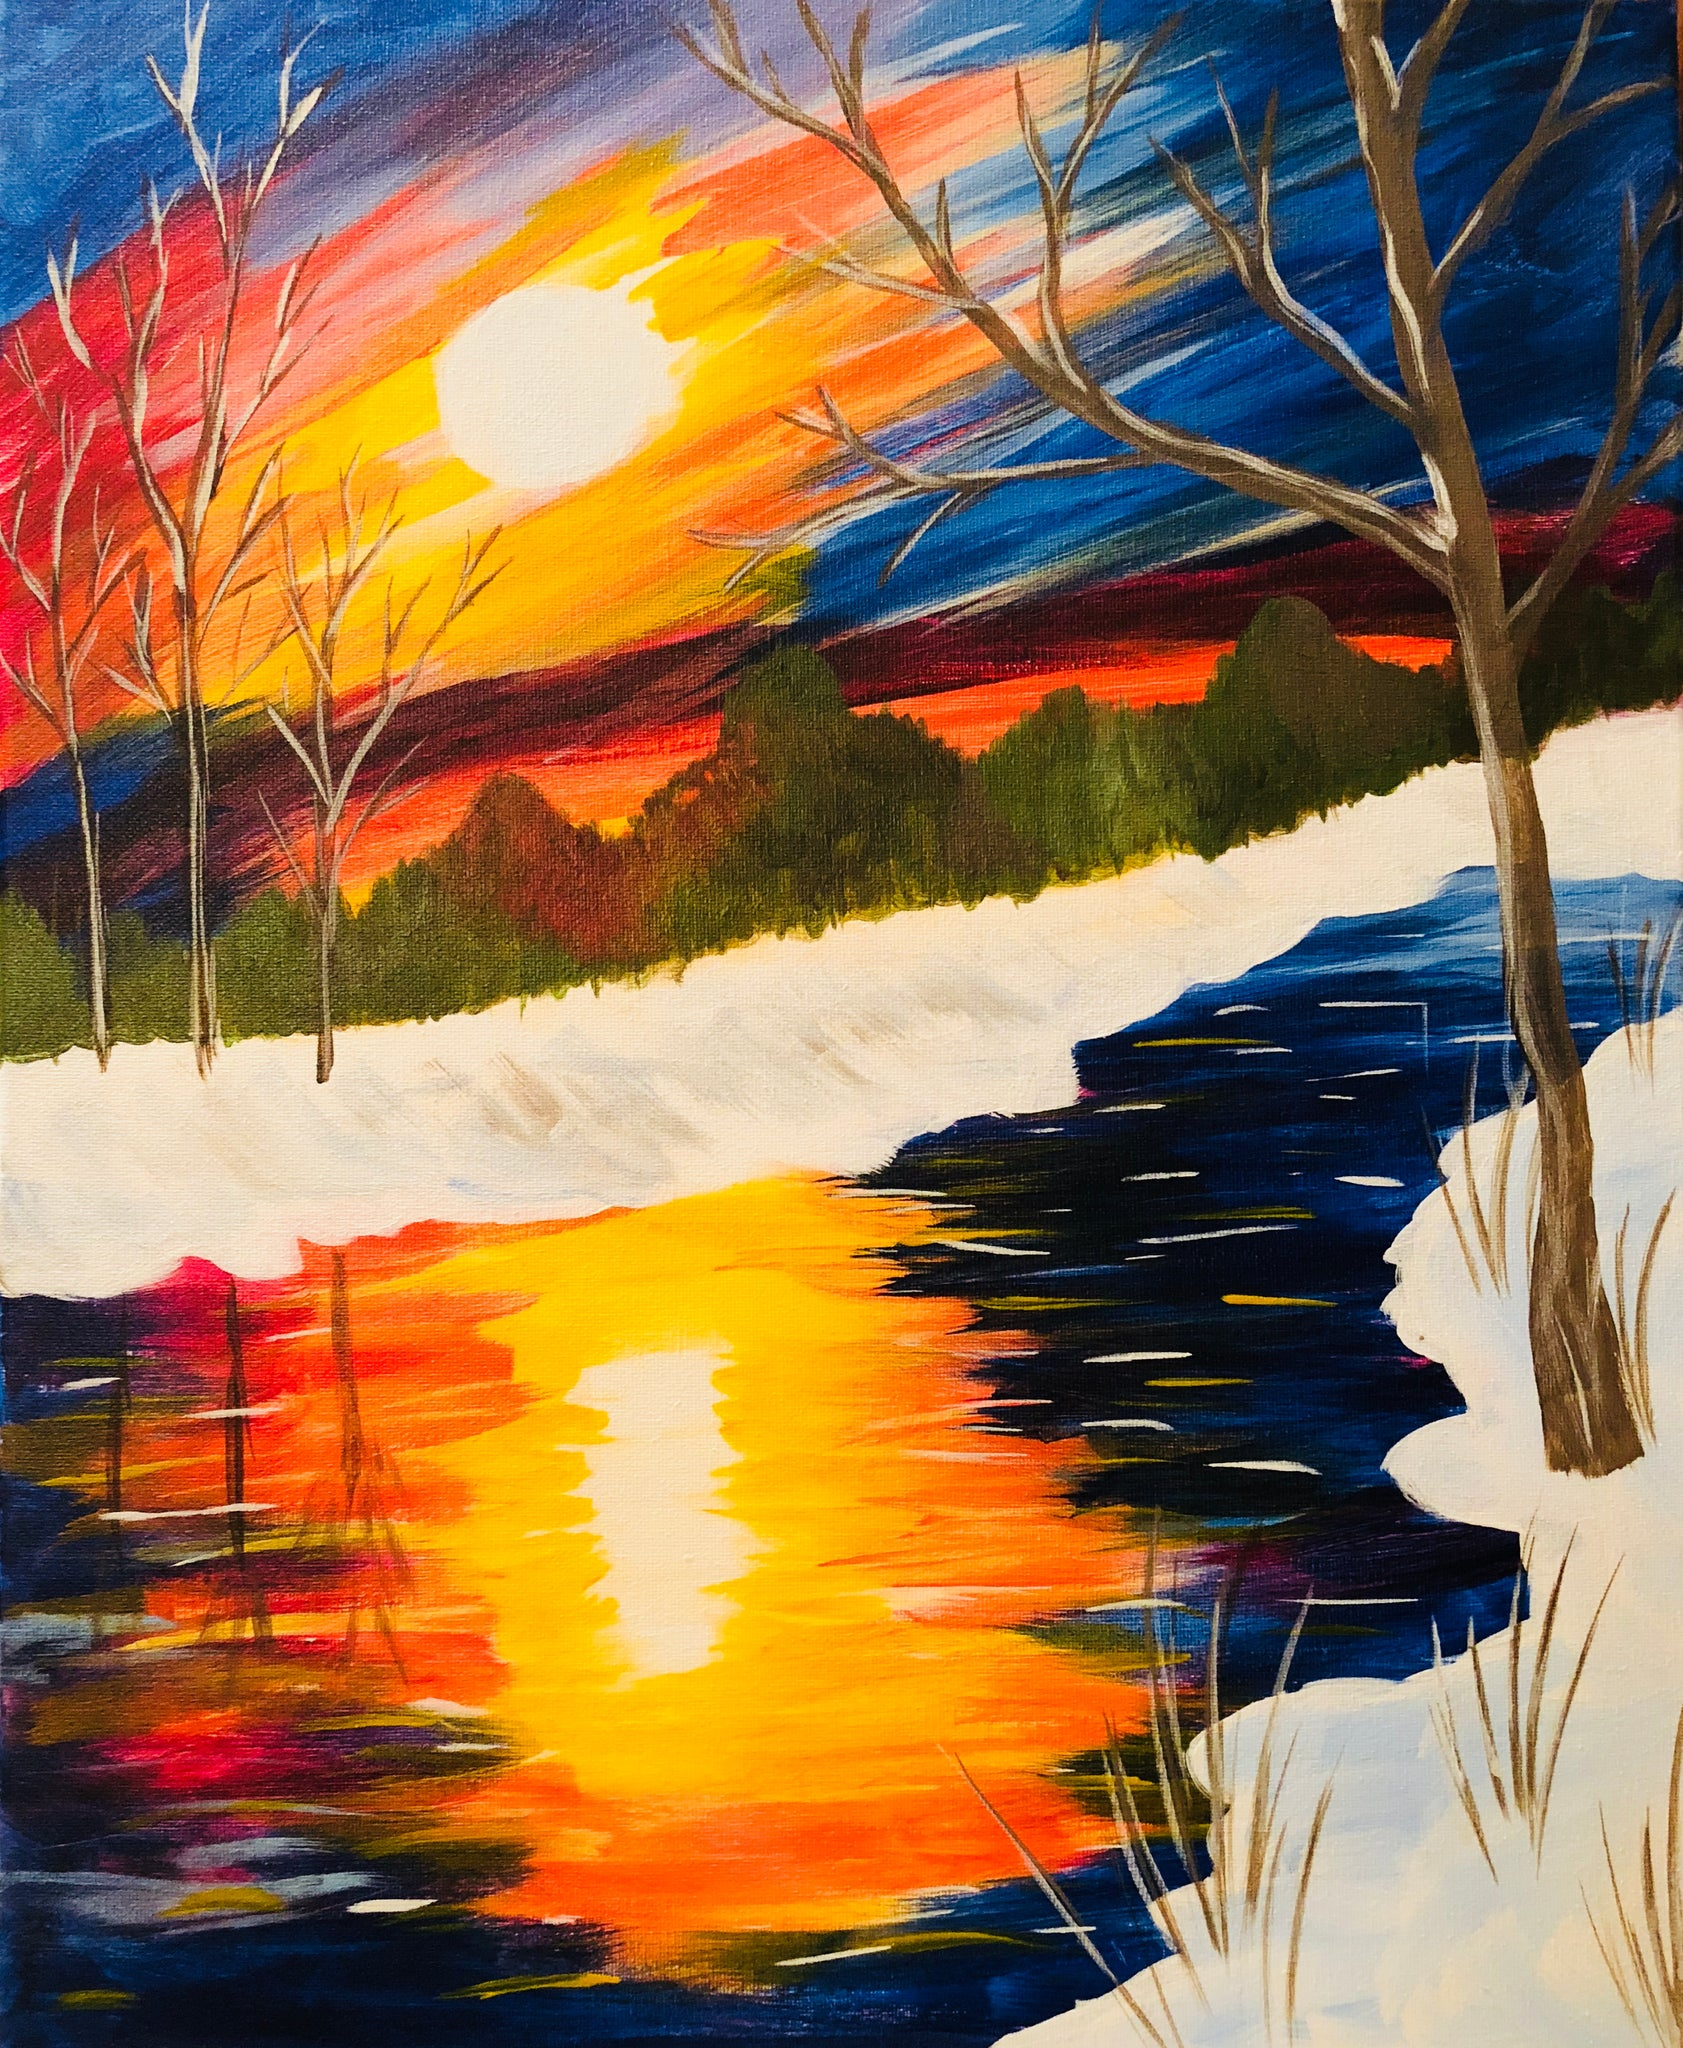 "Sat, Nov 24, 2018, 7-10pm ""Winter Stream"" Public Tulsa OK Paint, Wine, & Canvas Class"